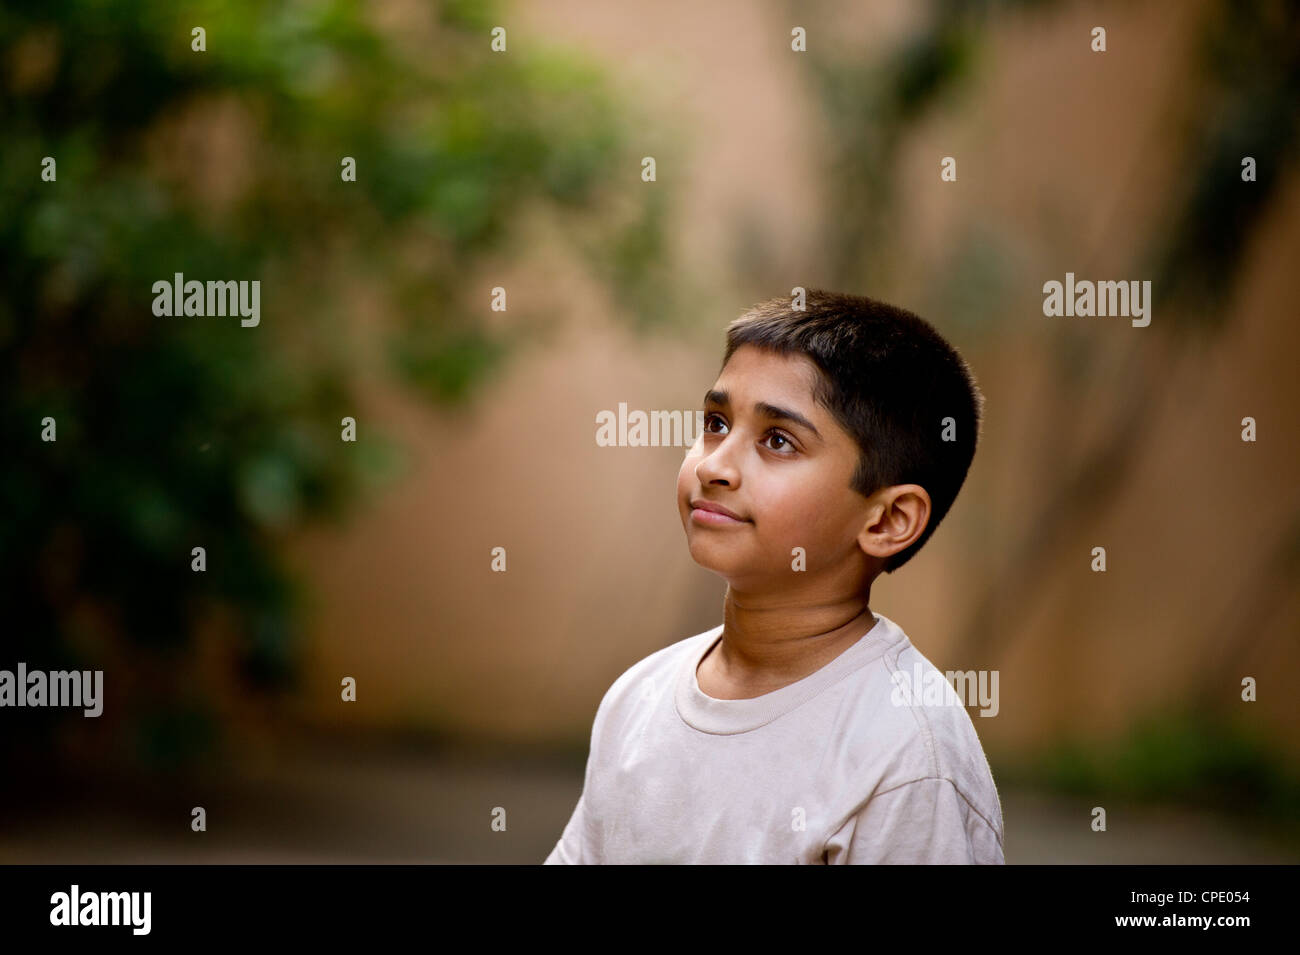 an young handsome Indian kid day dreaming Stock Photo